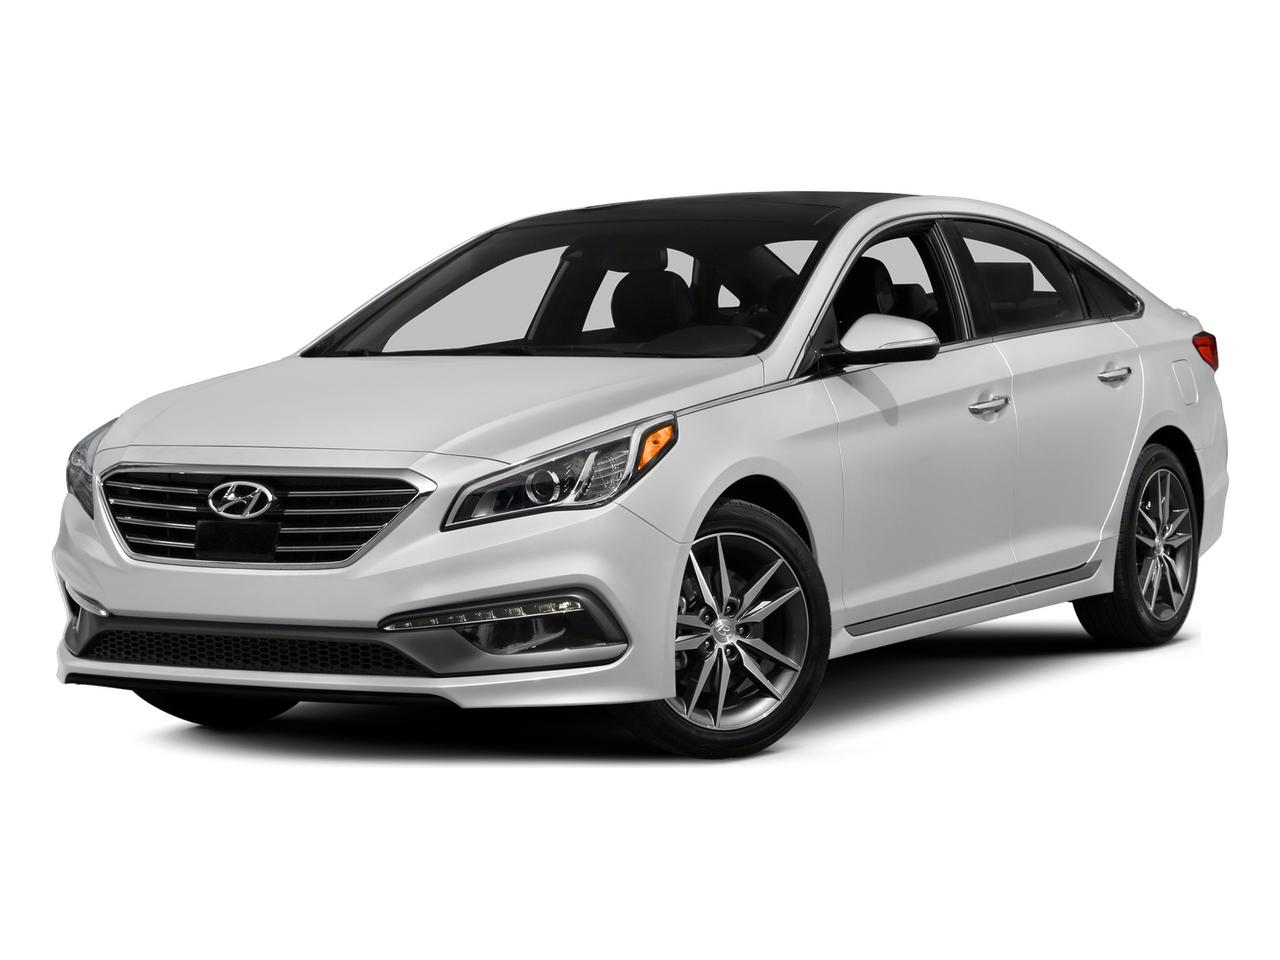 2015 Hyundai Sonata Vehicle Photo in Colorado Springs, CO 80905